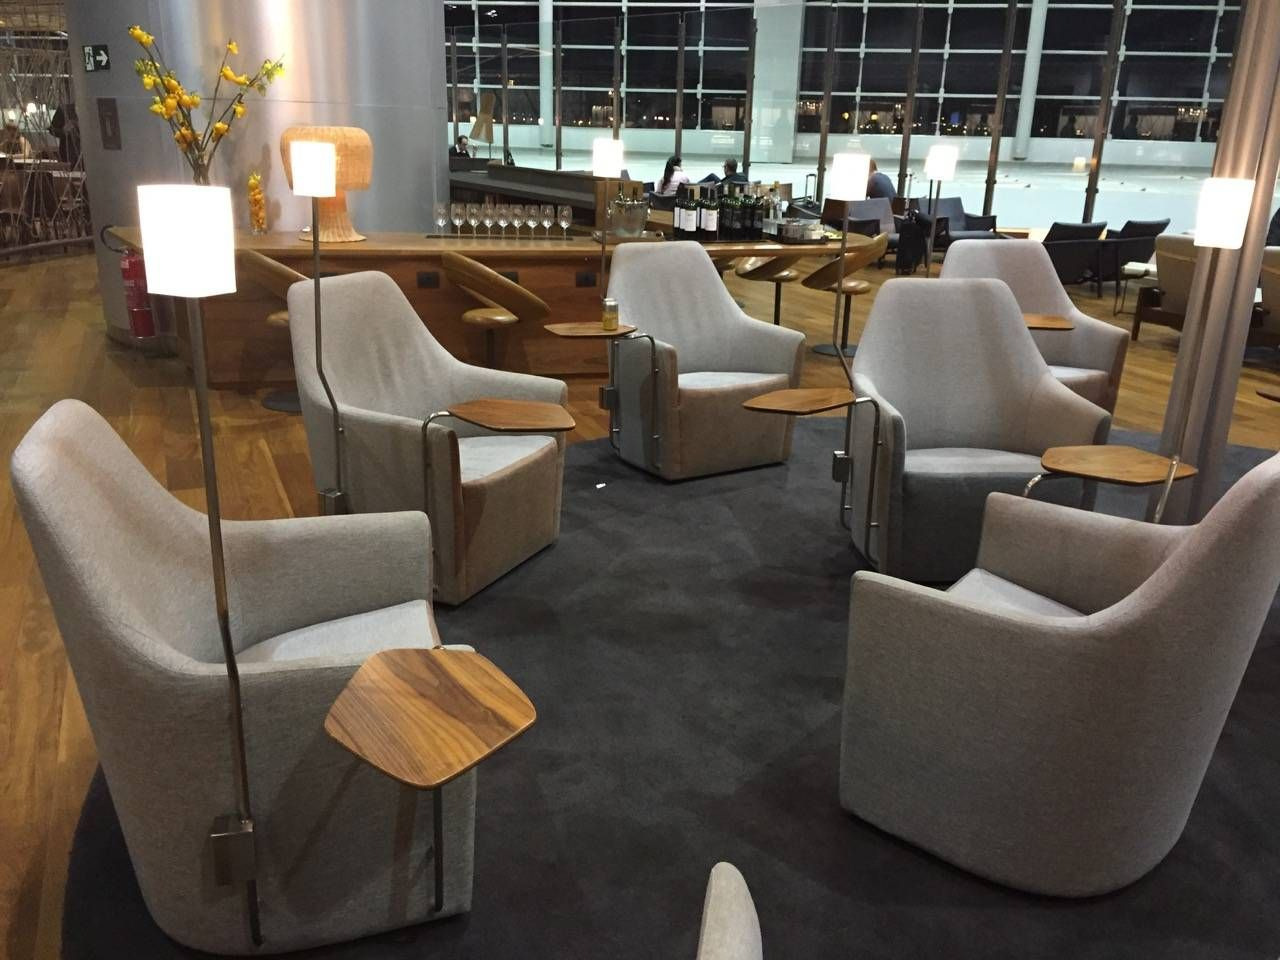 Star Alliance Lounge GRU-023